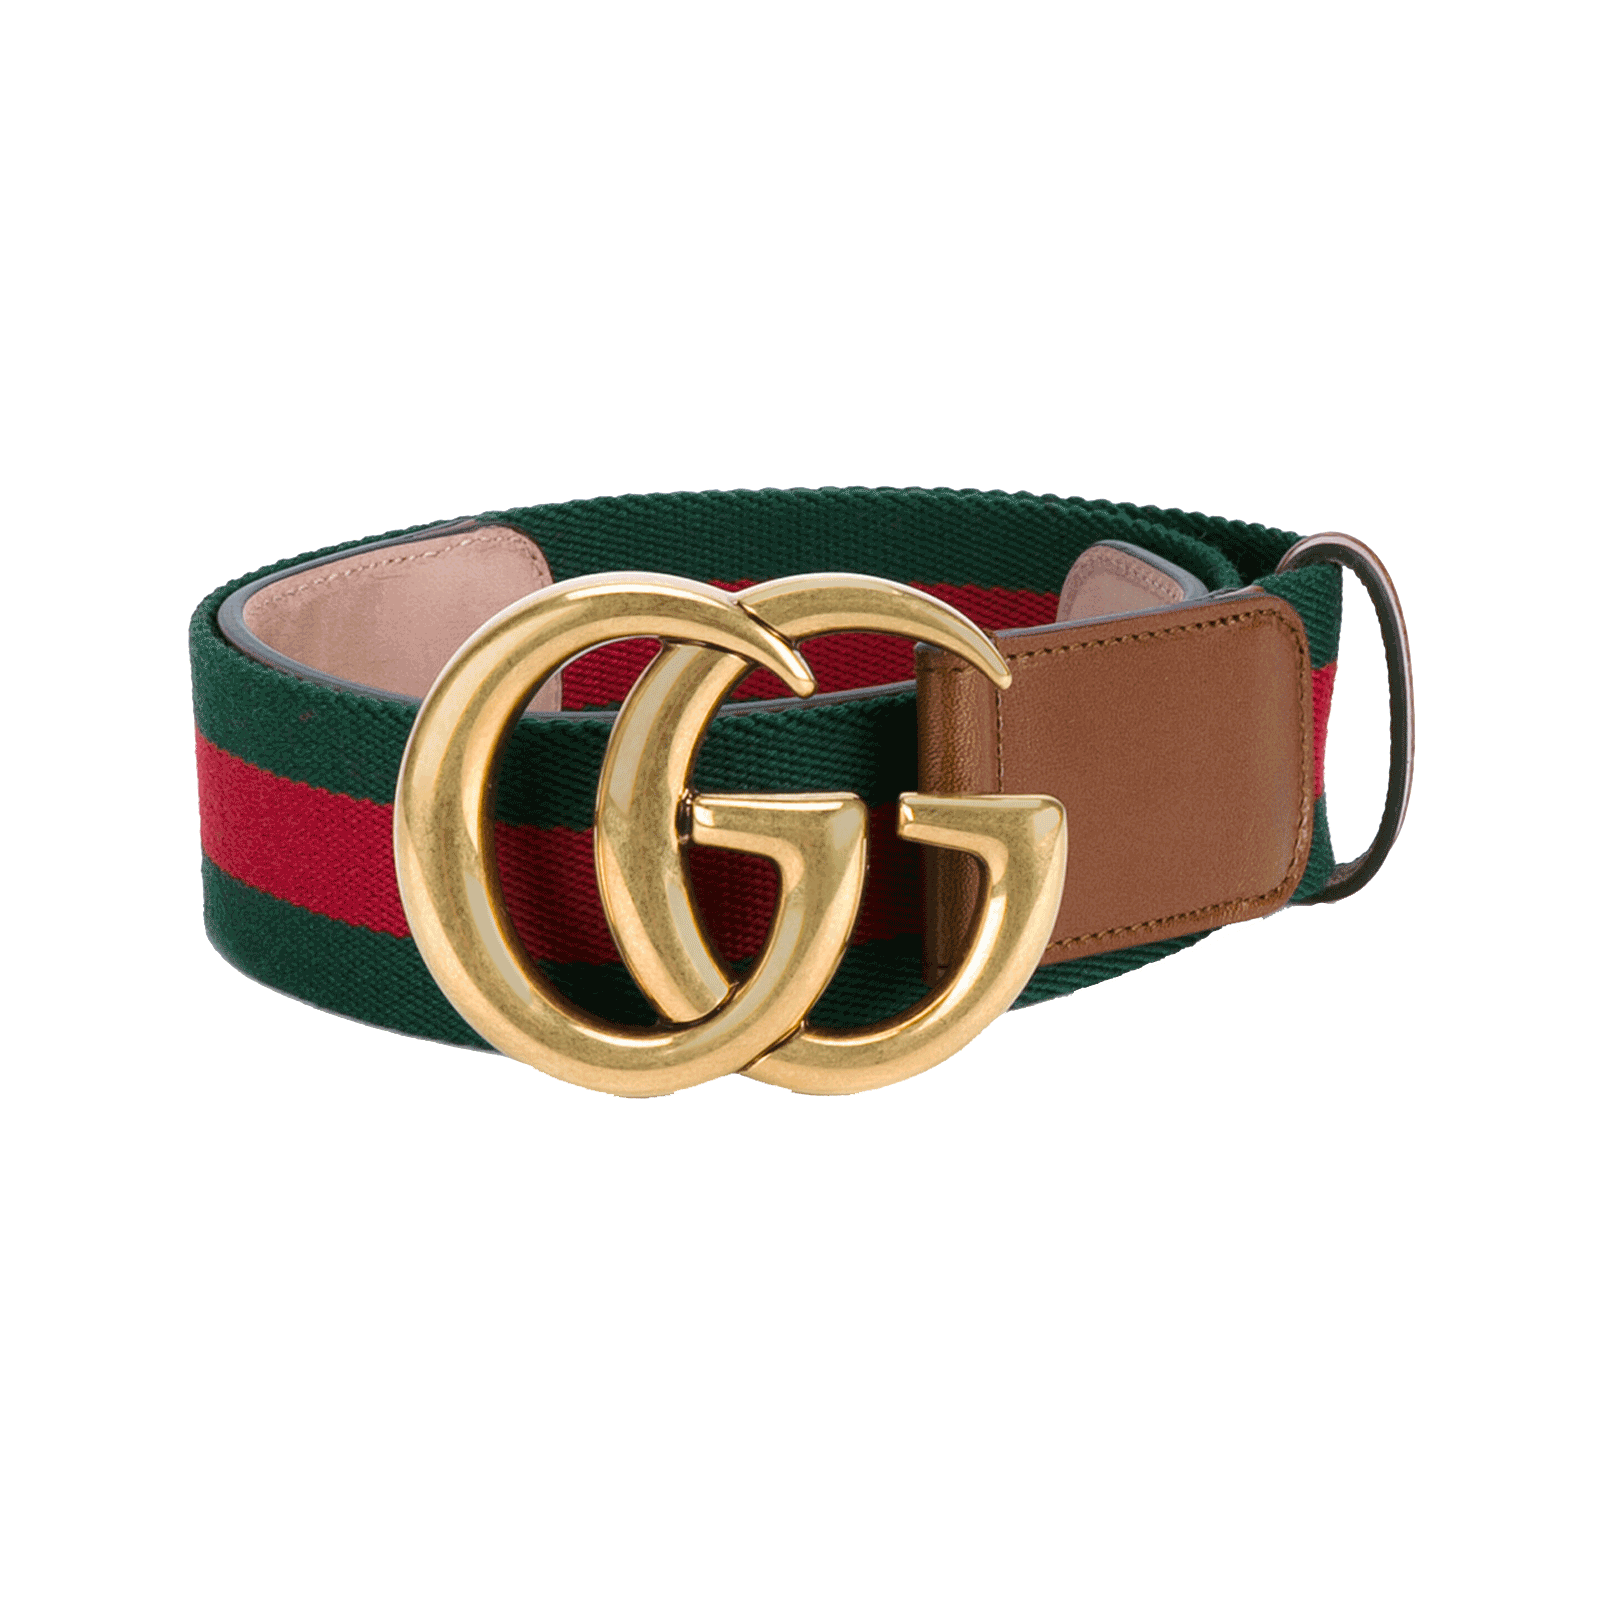 Gucci belt png. How to spend it